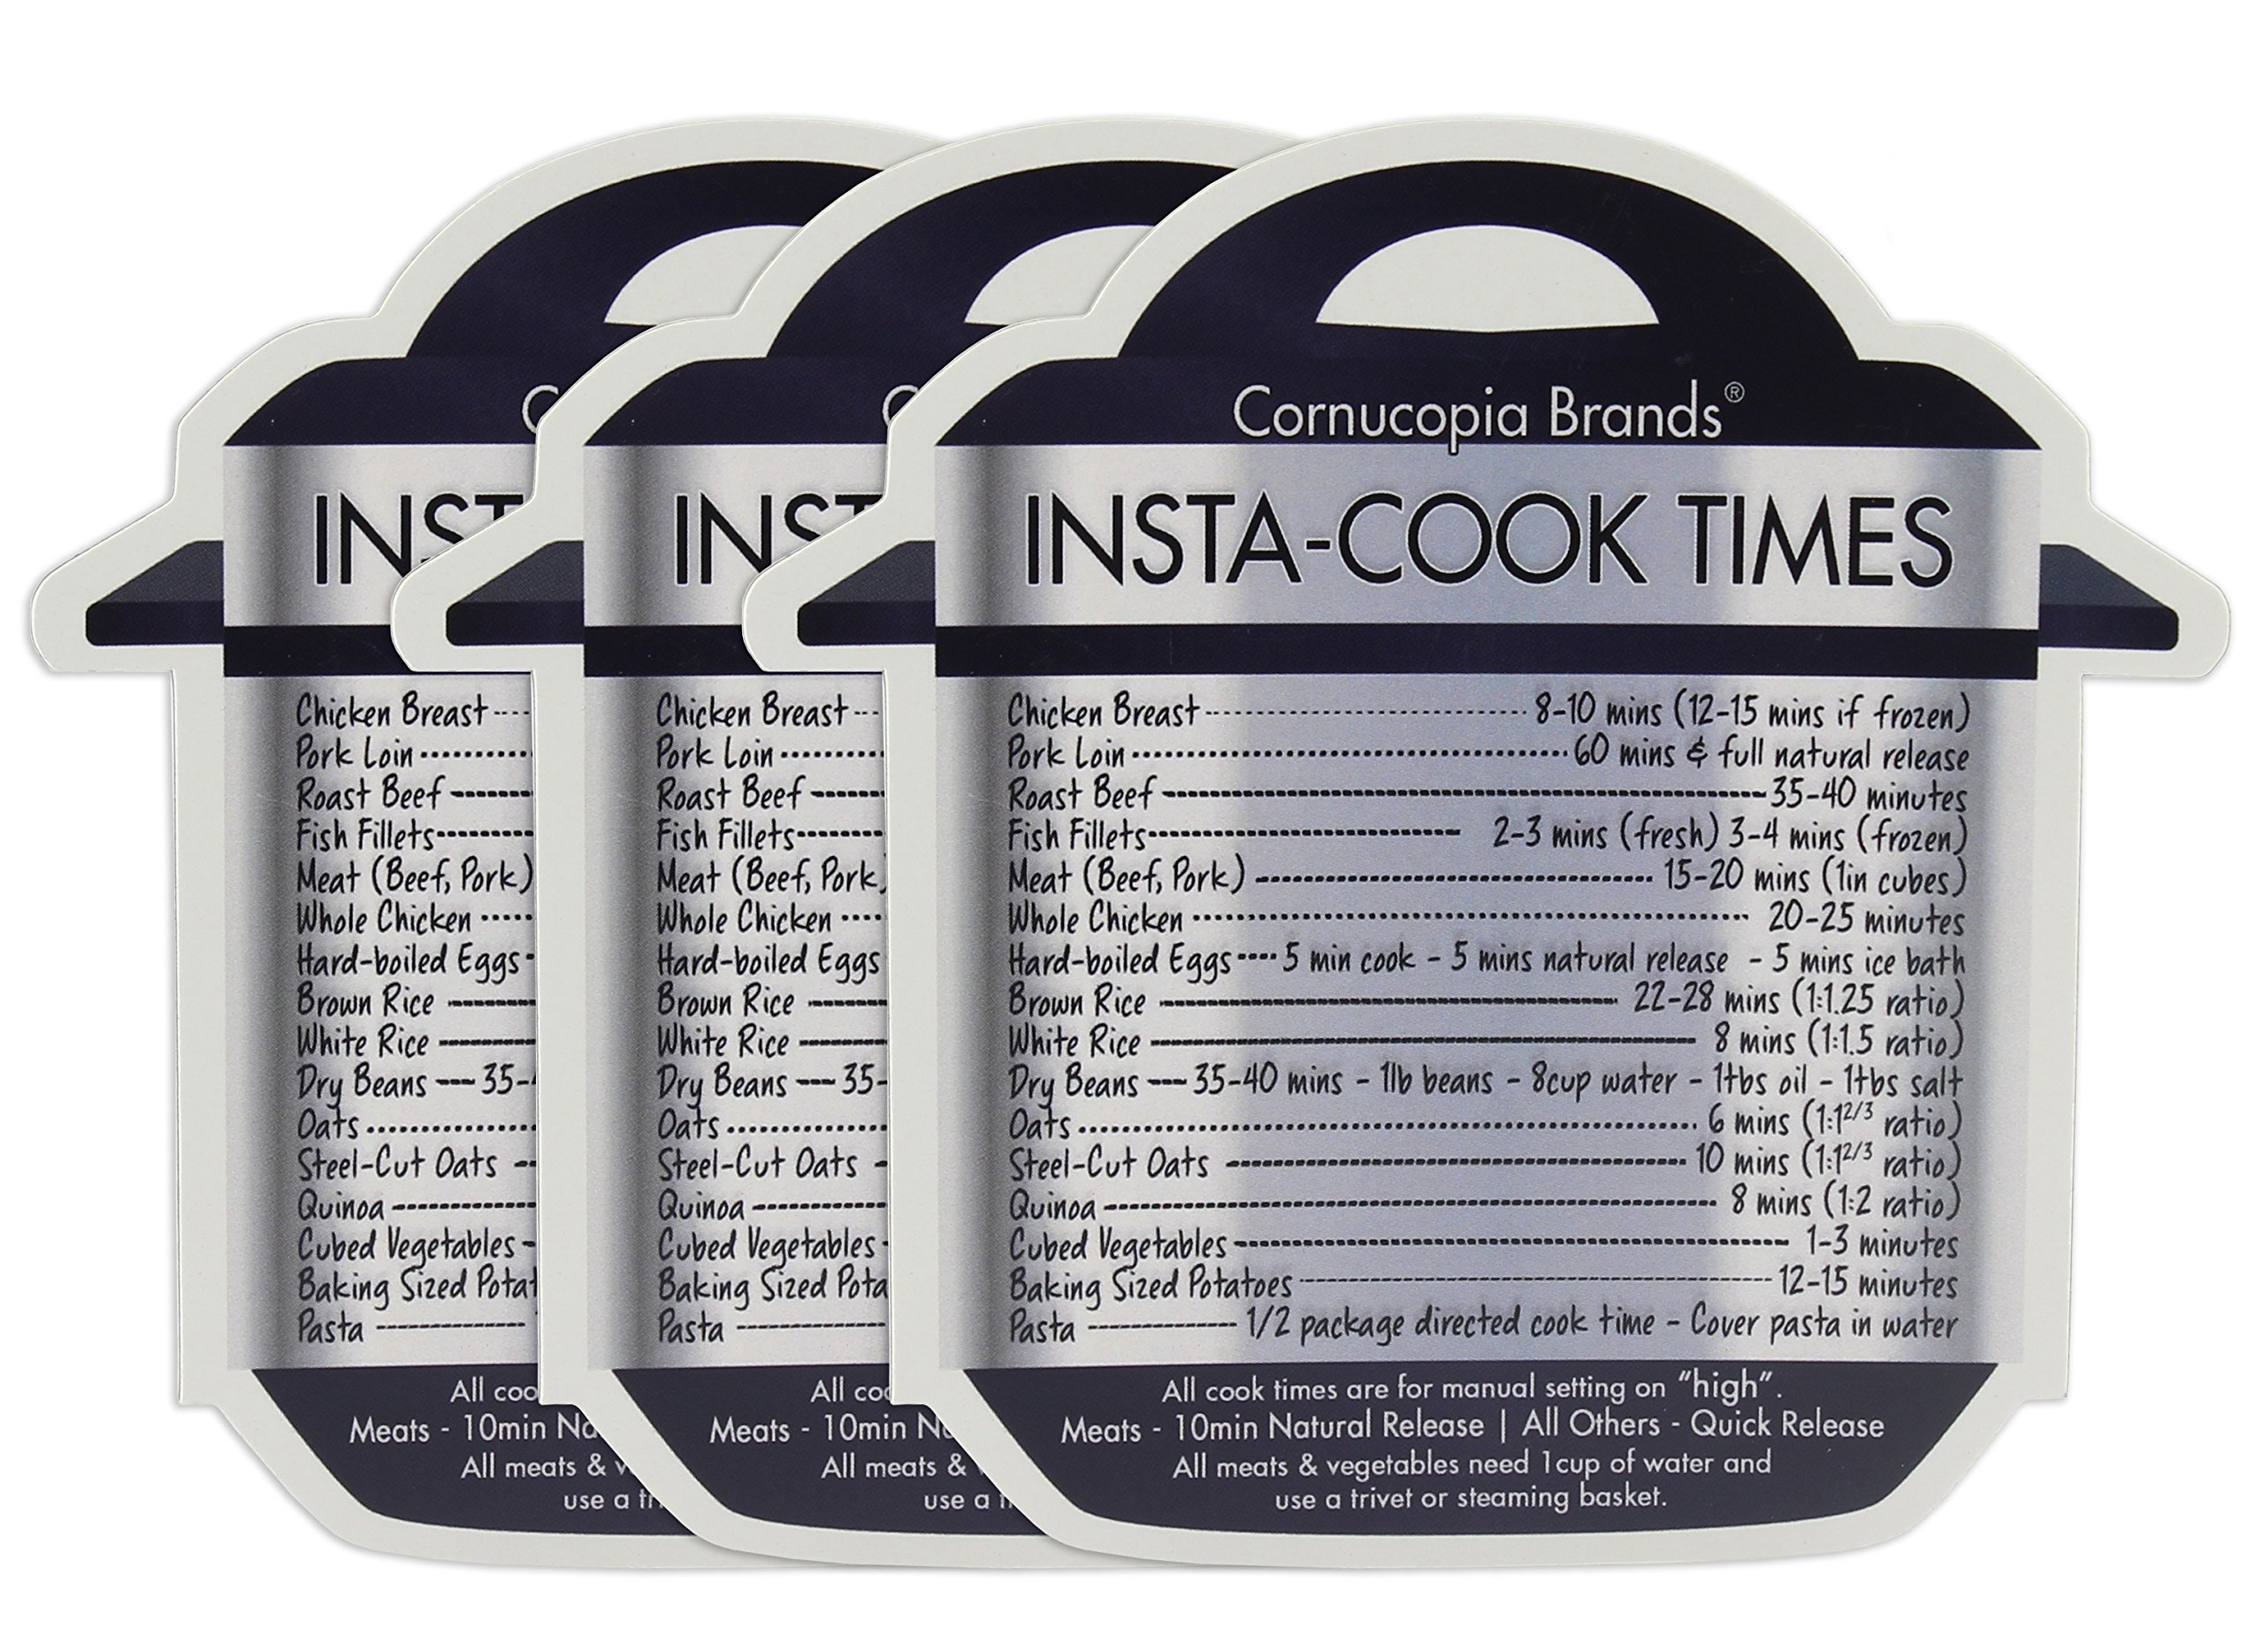 Instant Pot Cheat Sheet Magnets (3-Pack); Cooking Times for 16 Common Prep Functions by Cornucopia Brands